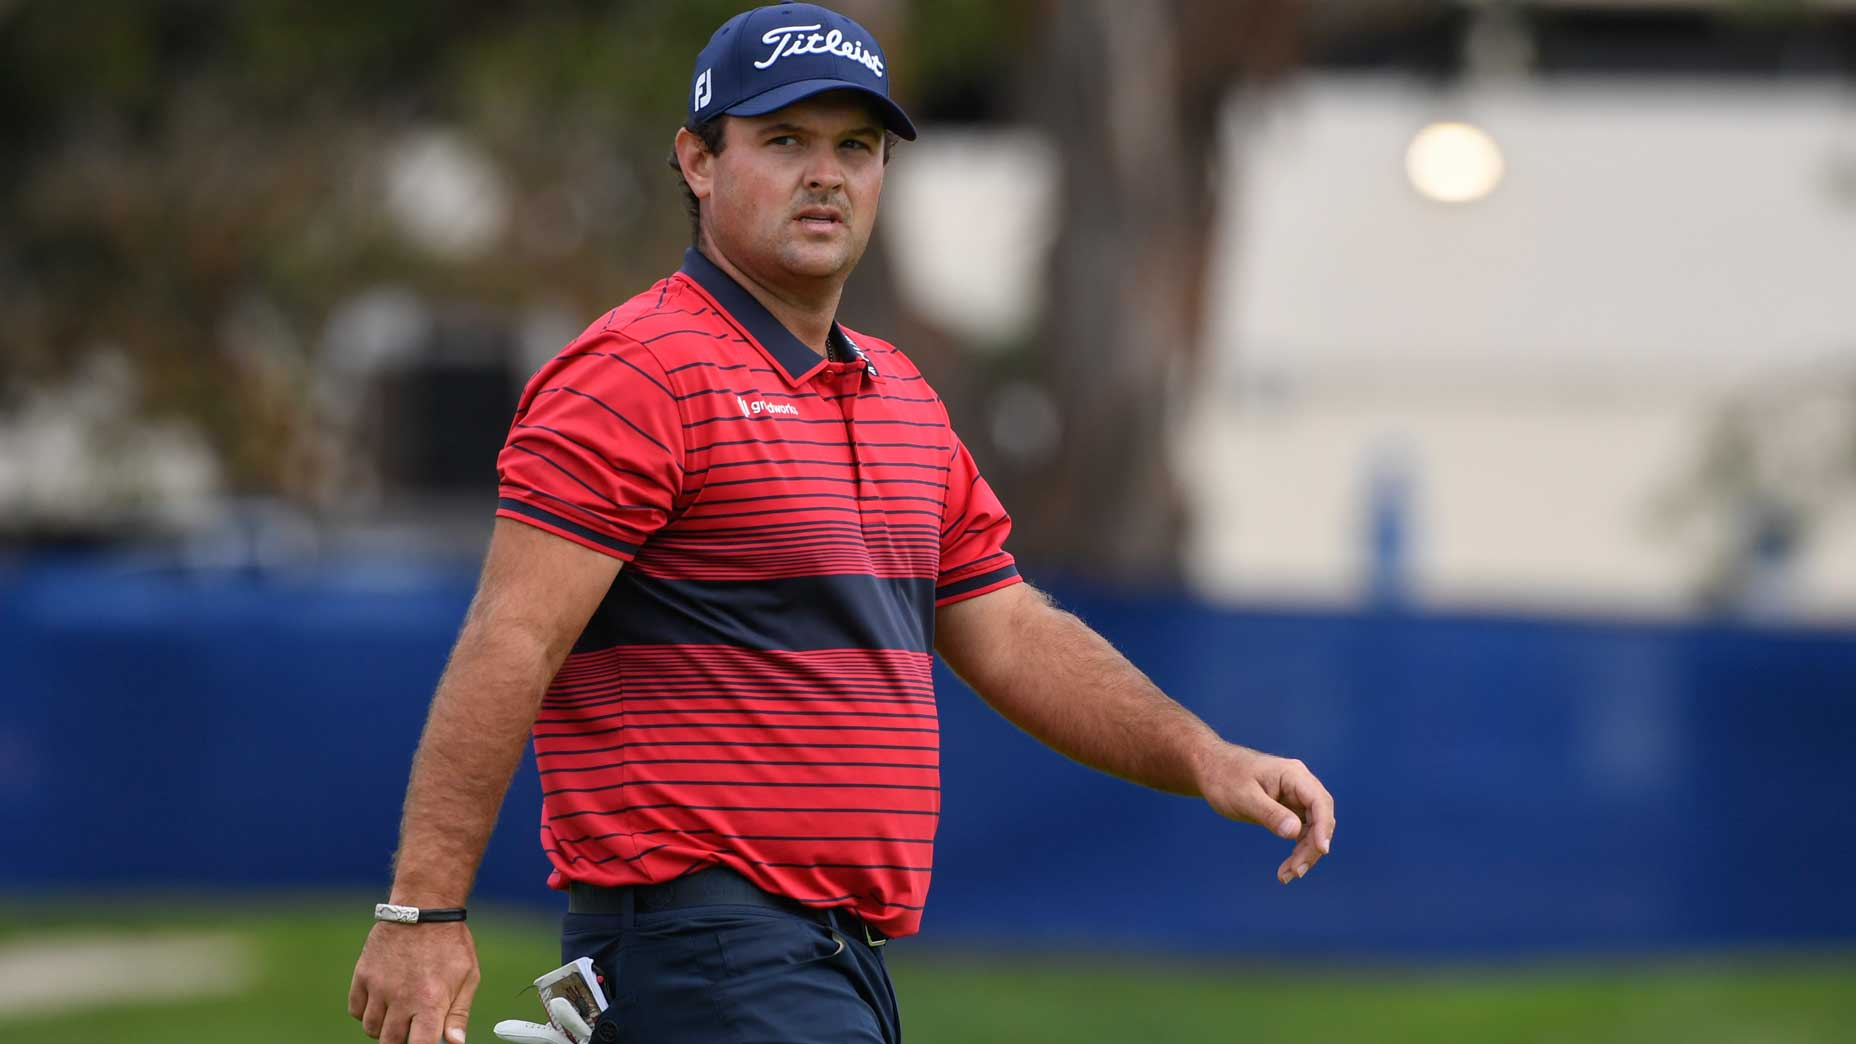 Patrick Reed can change his image, but first he must find his voice